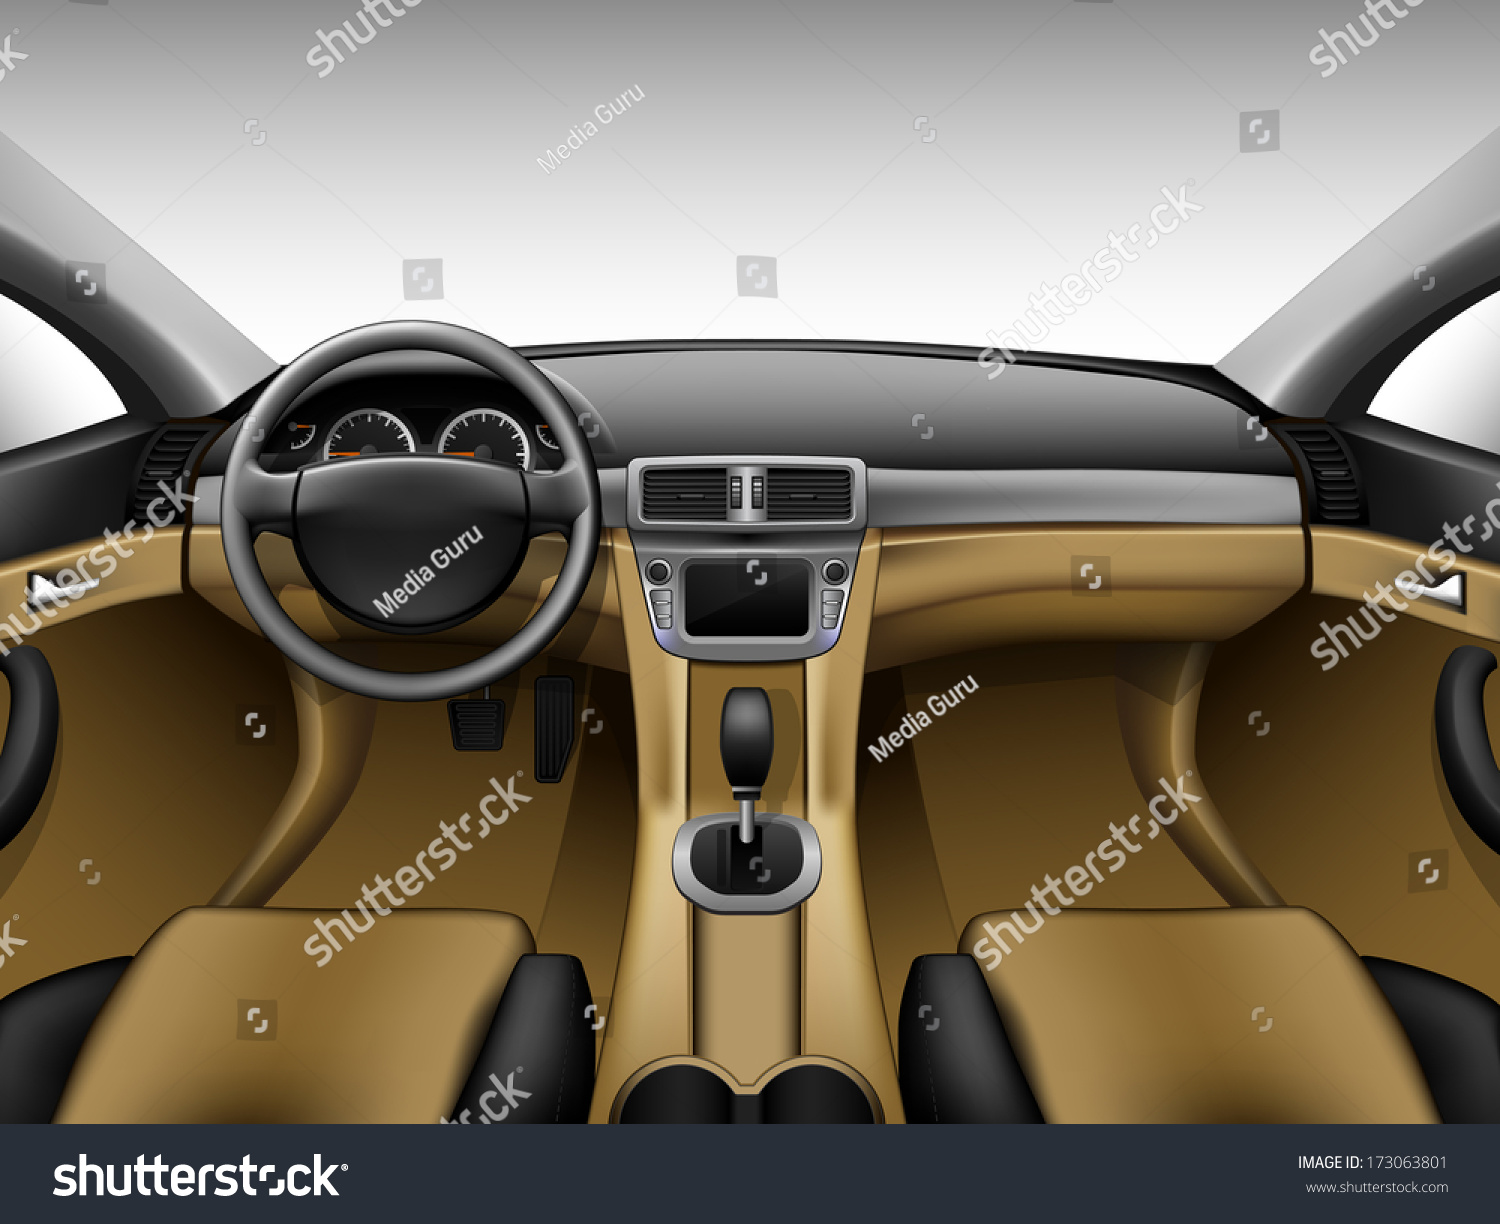 light beige leather car interior stock vector illustration 173063801 shutterstock. Black Bedroom Furniture Sets. Home Design Ideas